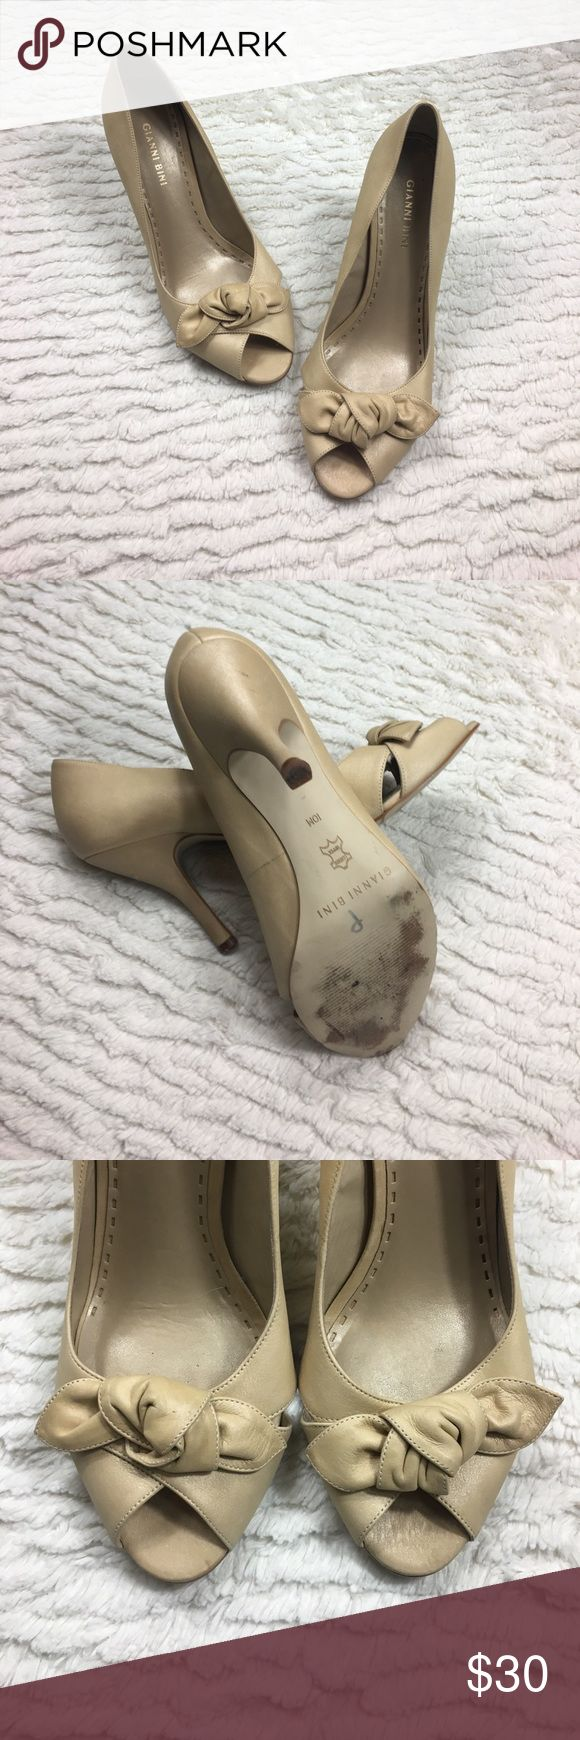 "Gianni Bini Nude peep toe pumps size 10 Bow detail Gianni Bini Nude peep toe pumps size 10 Bow detail. Slight wear. Lots of partying left to live. 4"" heel. Leather Upper. Super cute! Gianni Bini Shoes Heels"